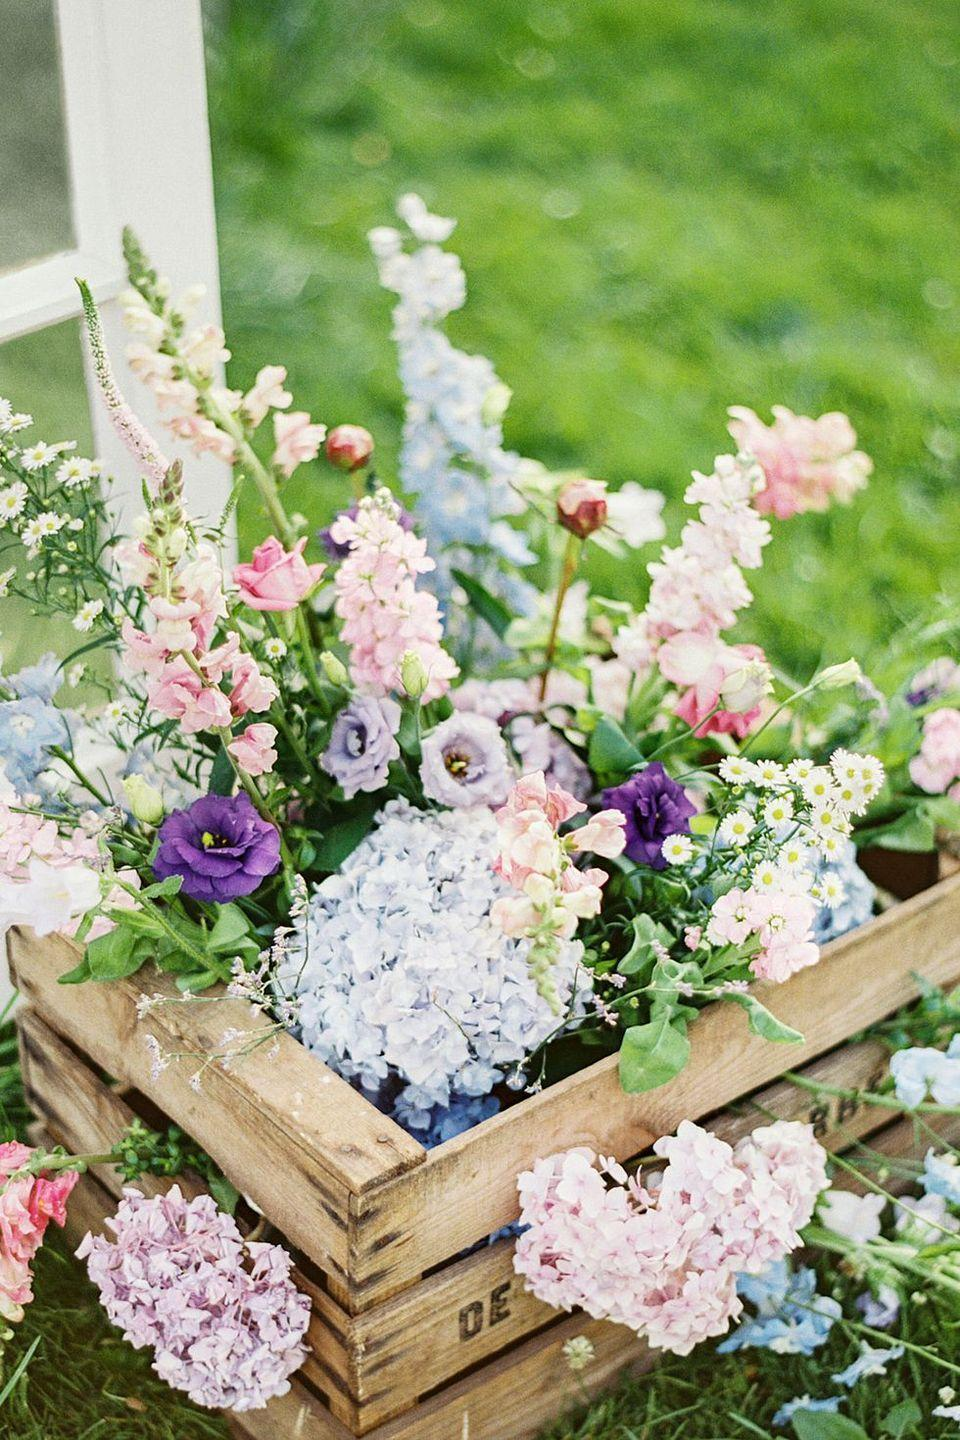 """<p>Hydrangeas, lisianthus and, snapdragons will be in their element when placed in a rustic crate, which can also be left out on your front porch. </p><p><em><a href=""""https://www.countryliving.com/entertaining/g733/spring-table-settings-0209/?slide=12"""" rel=""""nofollow noopener"""" target=""""_blank"""" data-ylk=""""slk:Get the tutorial from Country Living »"""" class=""""link rapid-noclick-resp"""">Get the tutorial from Country Living »</a></em></p>"""